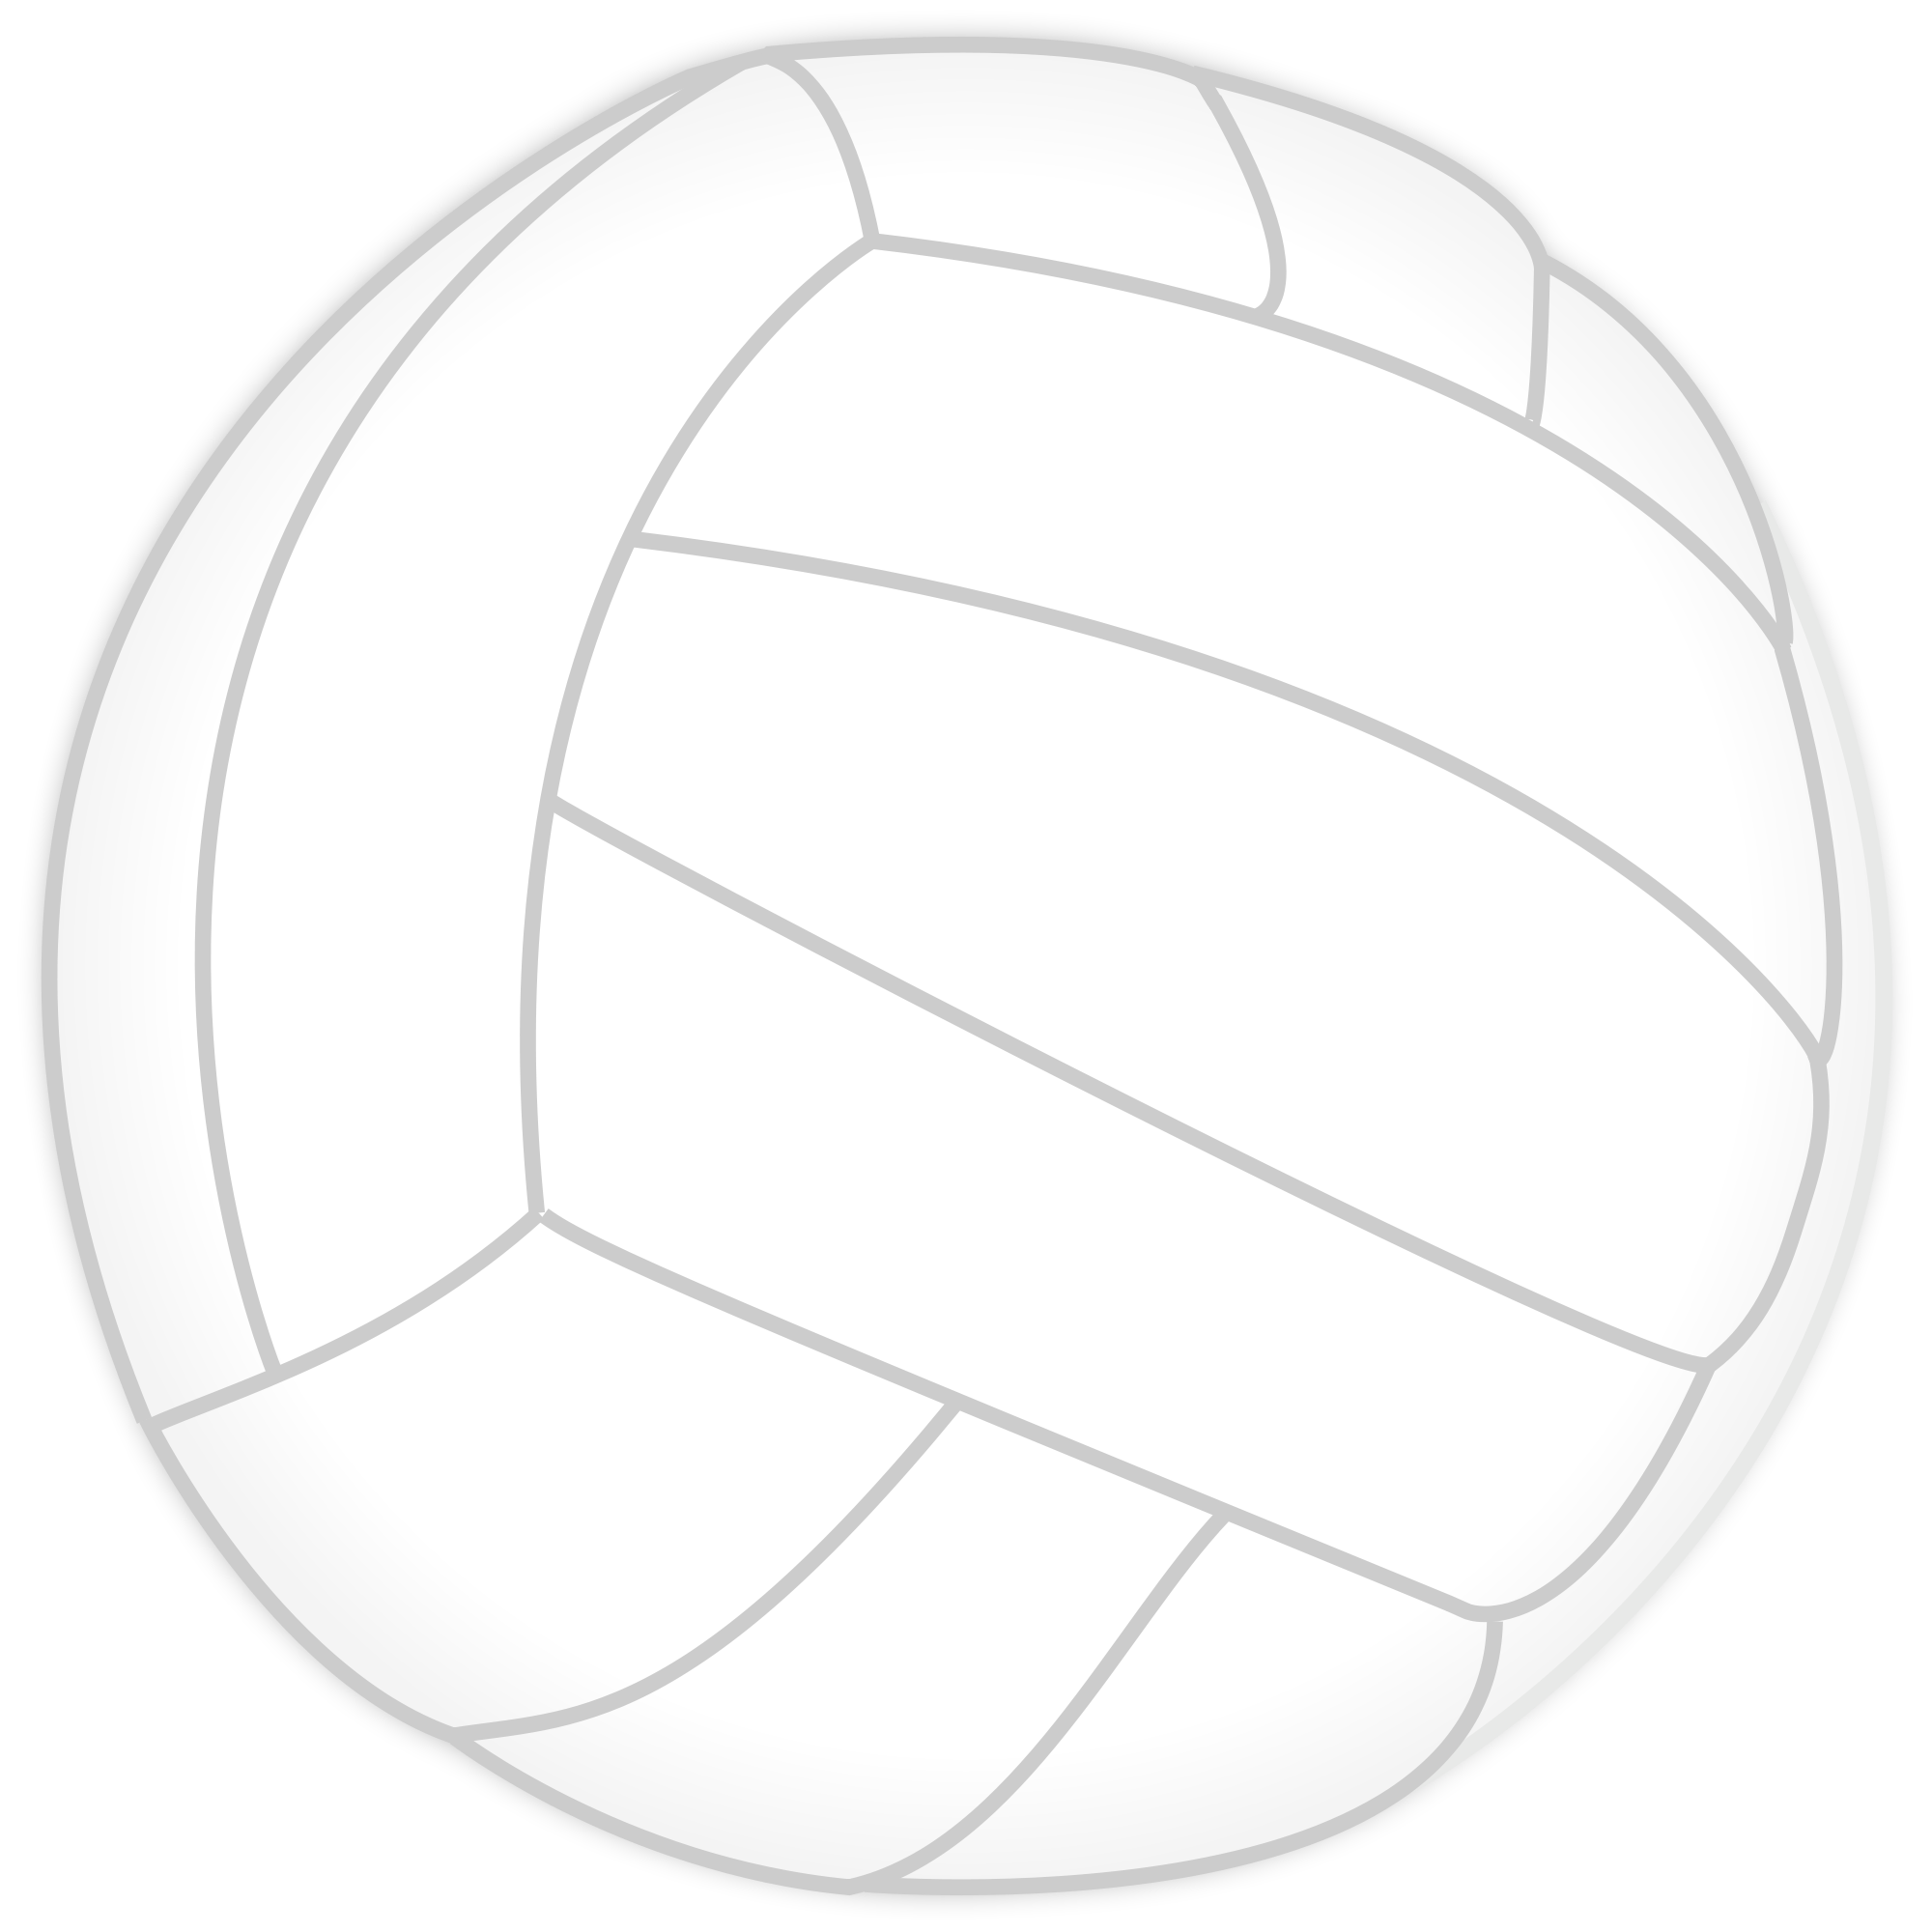 Ball and net png. Volleyball clipart high school volleyball